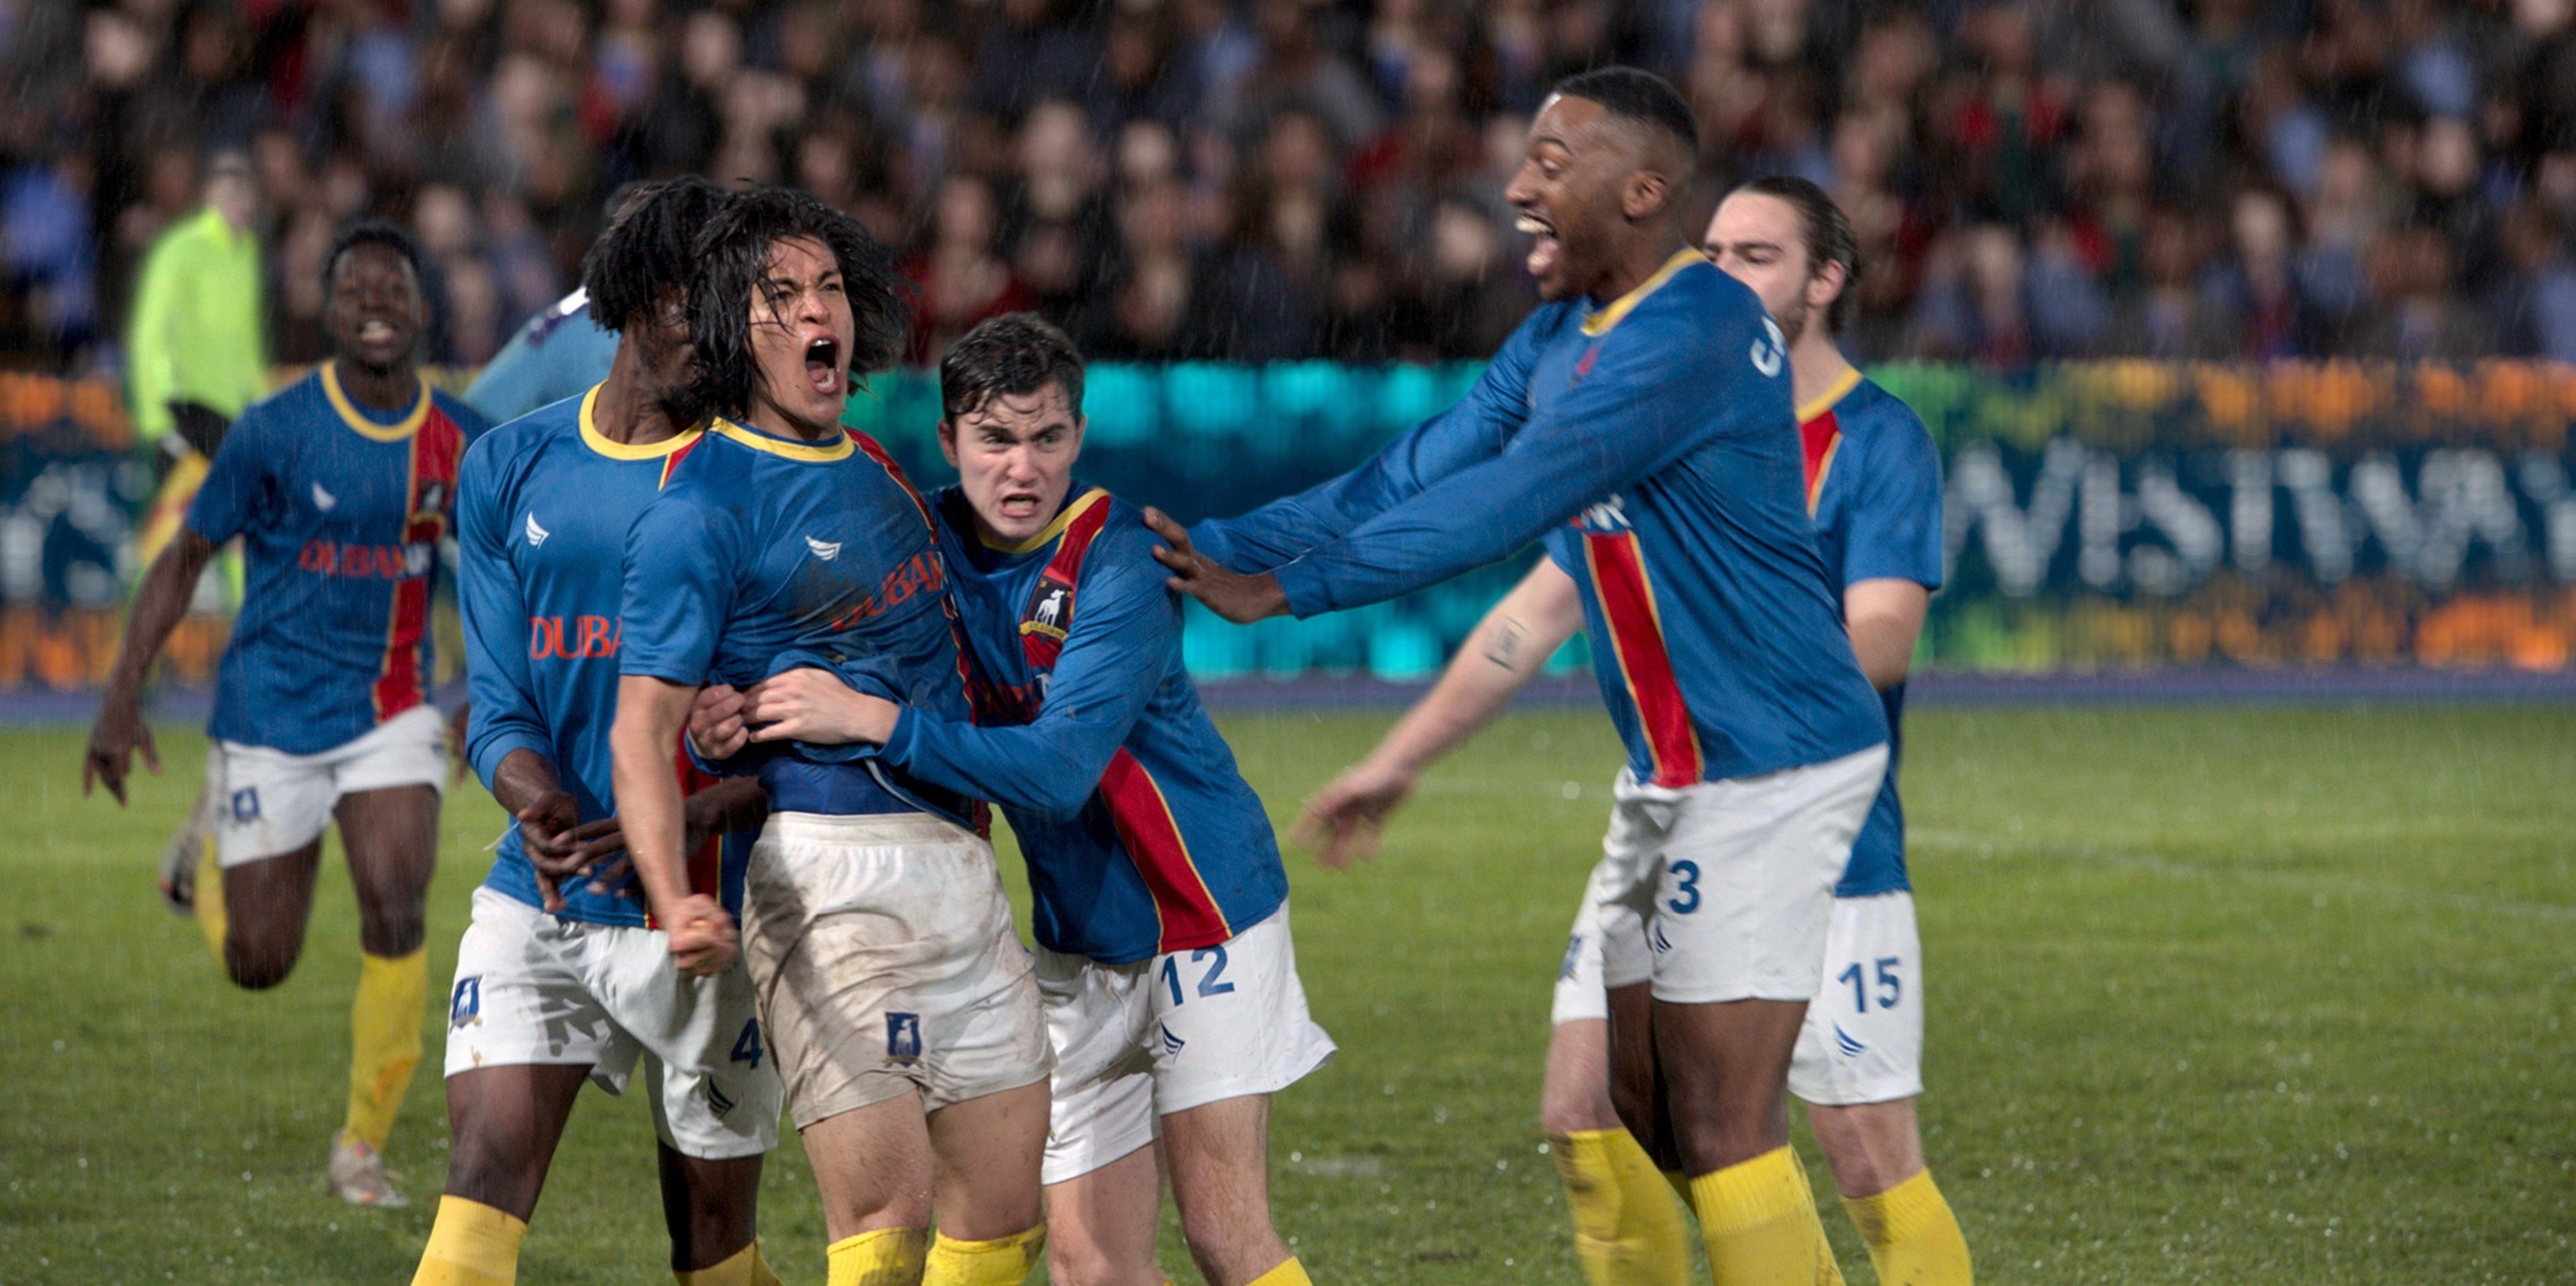 AFC Richmond celebrating during a game